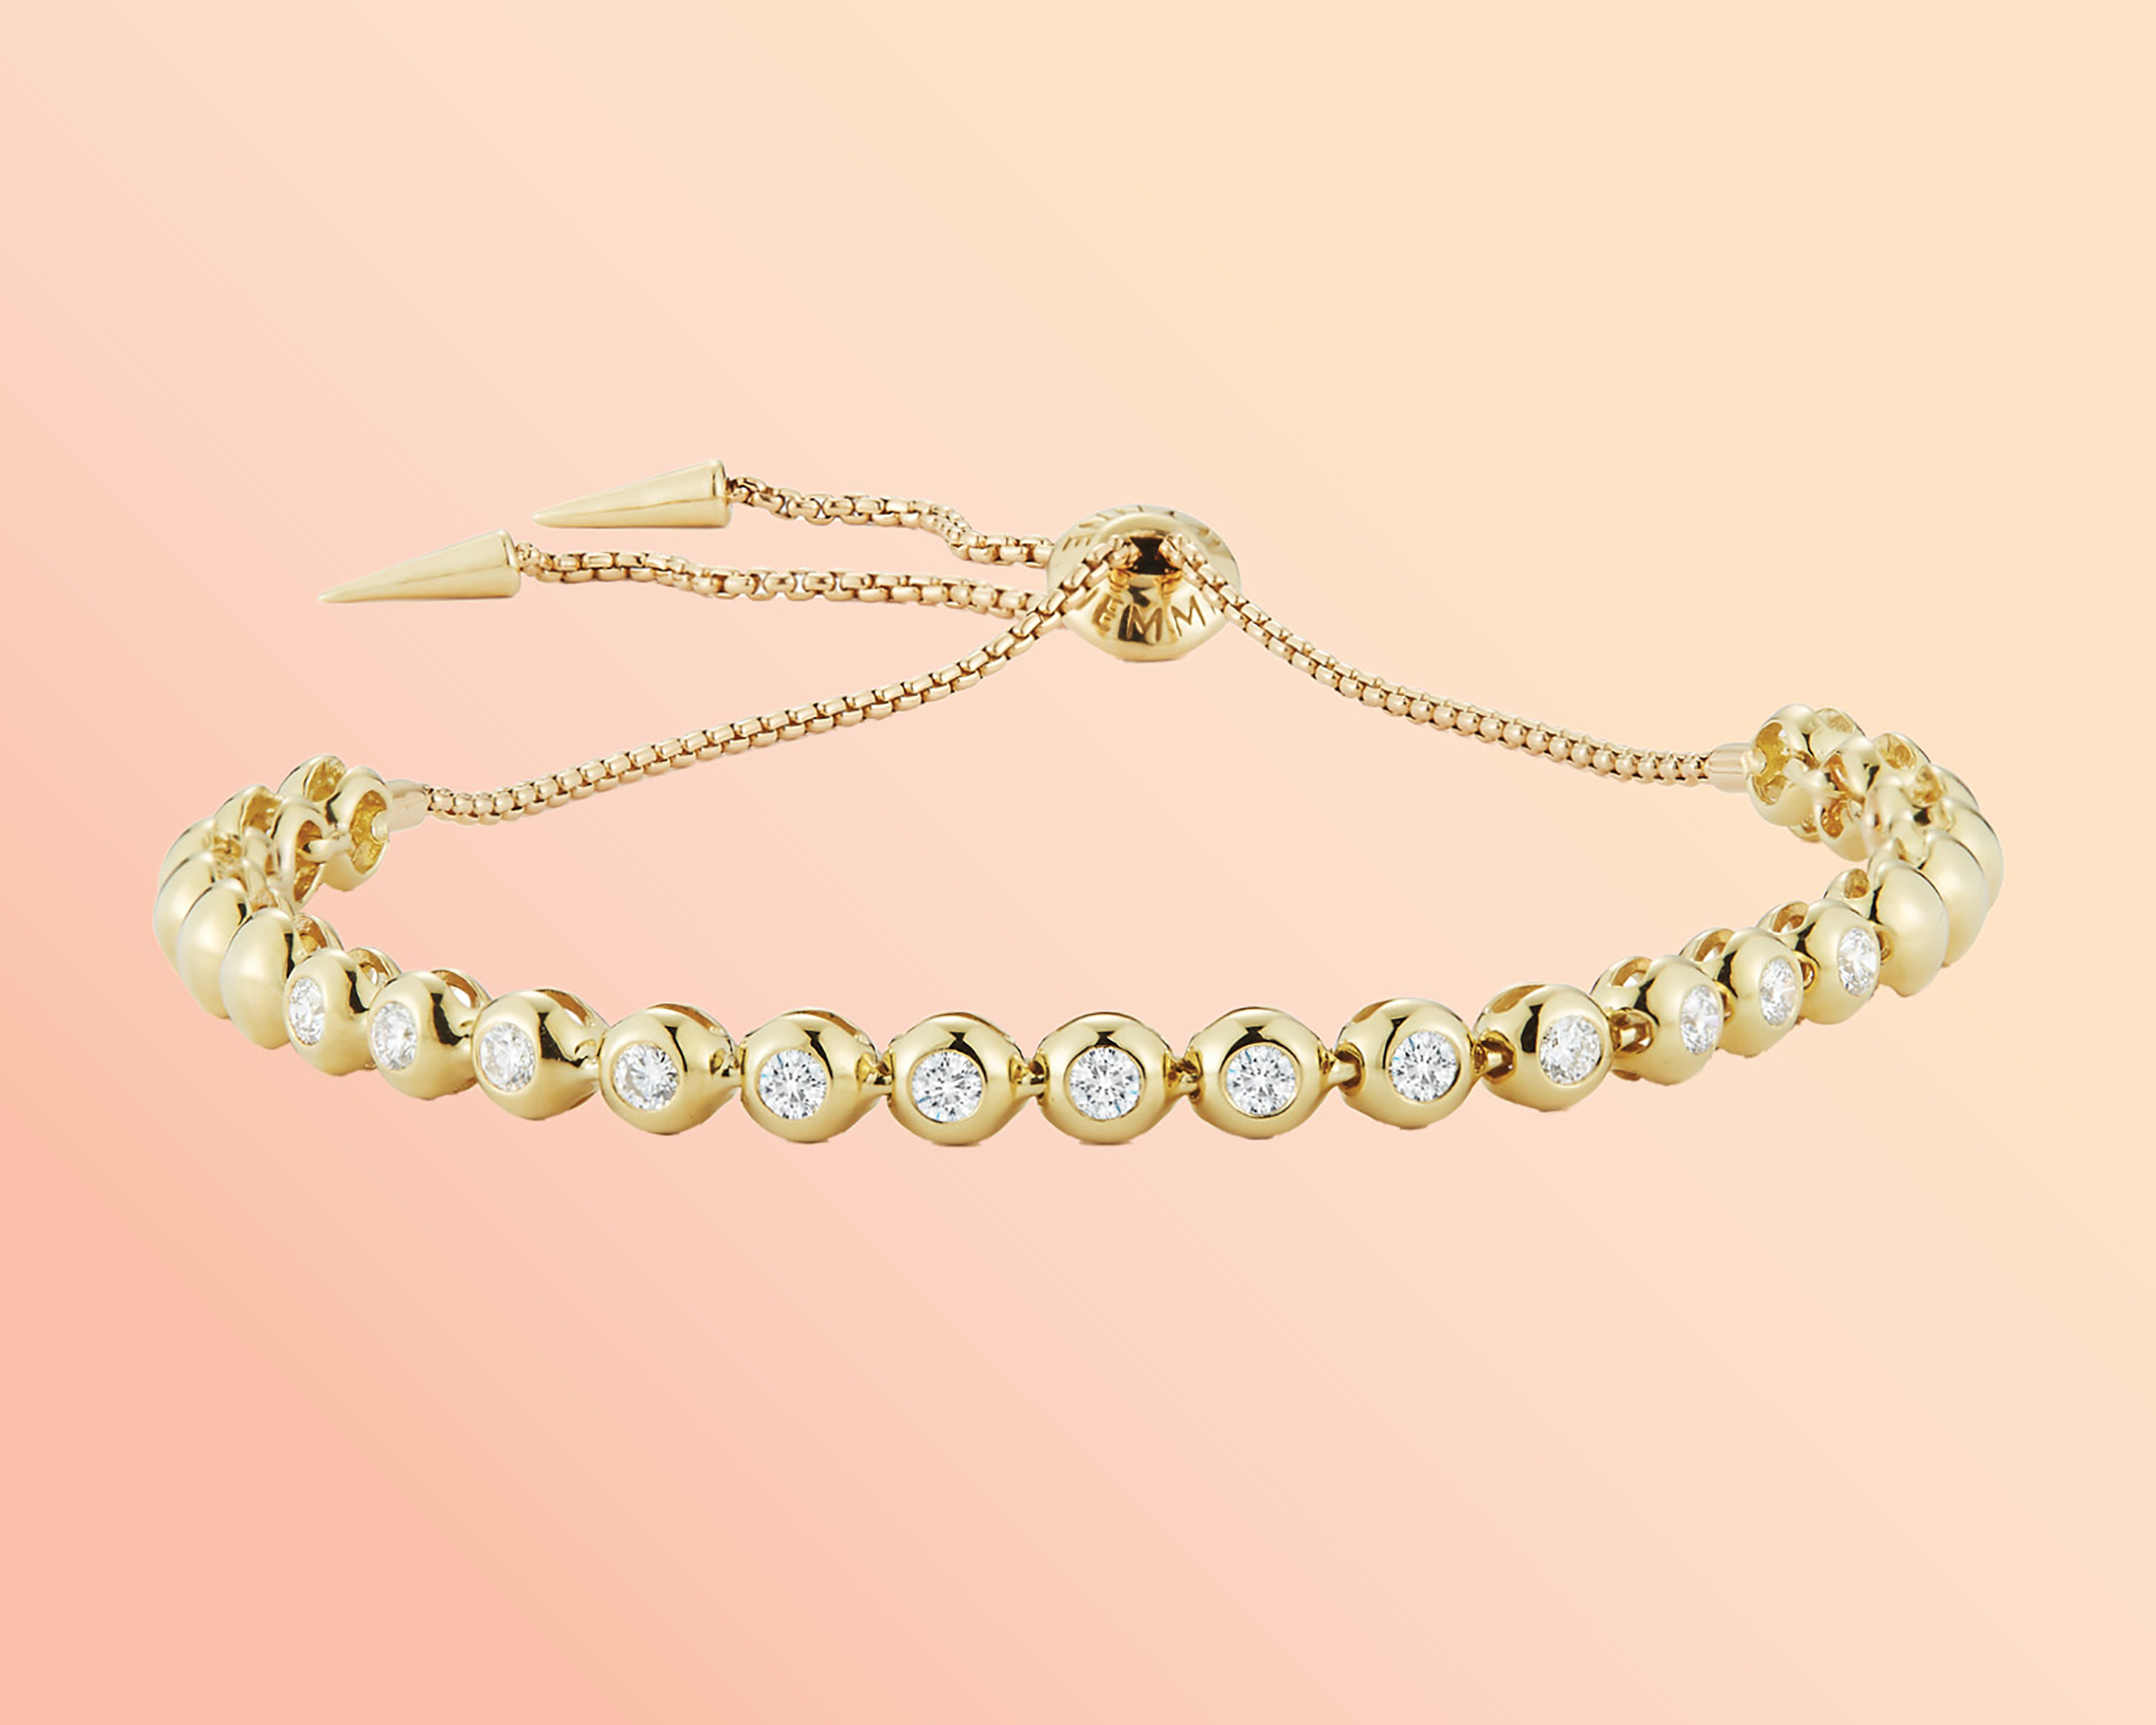 Prive Luxe Small diamond ball gold slider bracelet from Jemma Wynne featuring a tennis bracelet design with round cut diamonds set in yellow gold